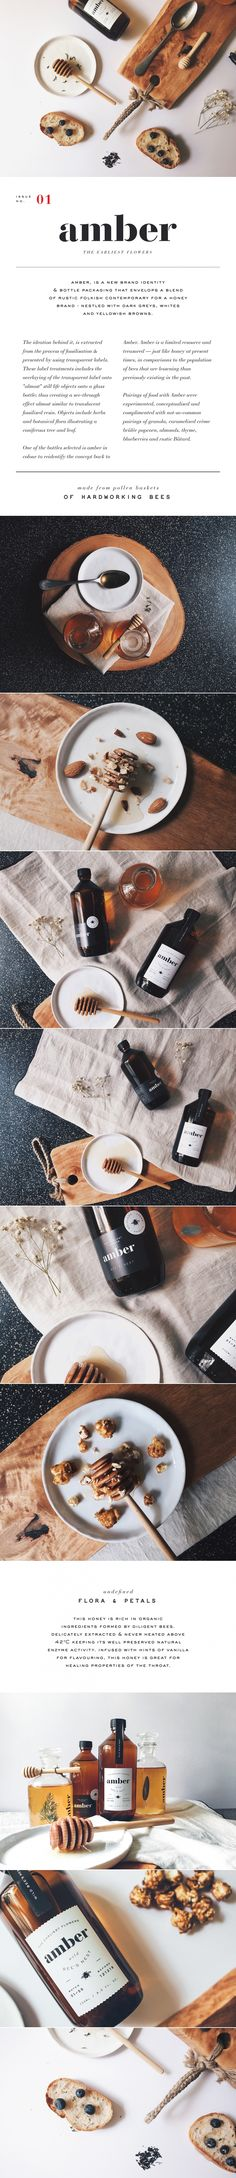 Amber design & branding packaging.